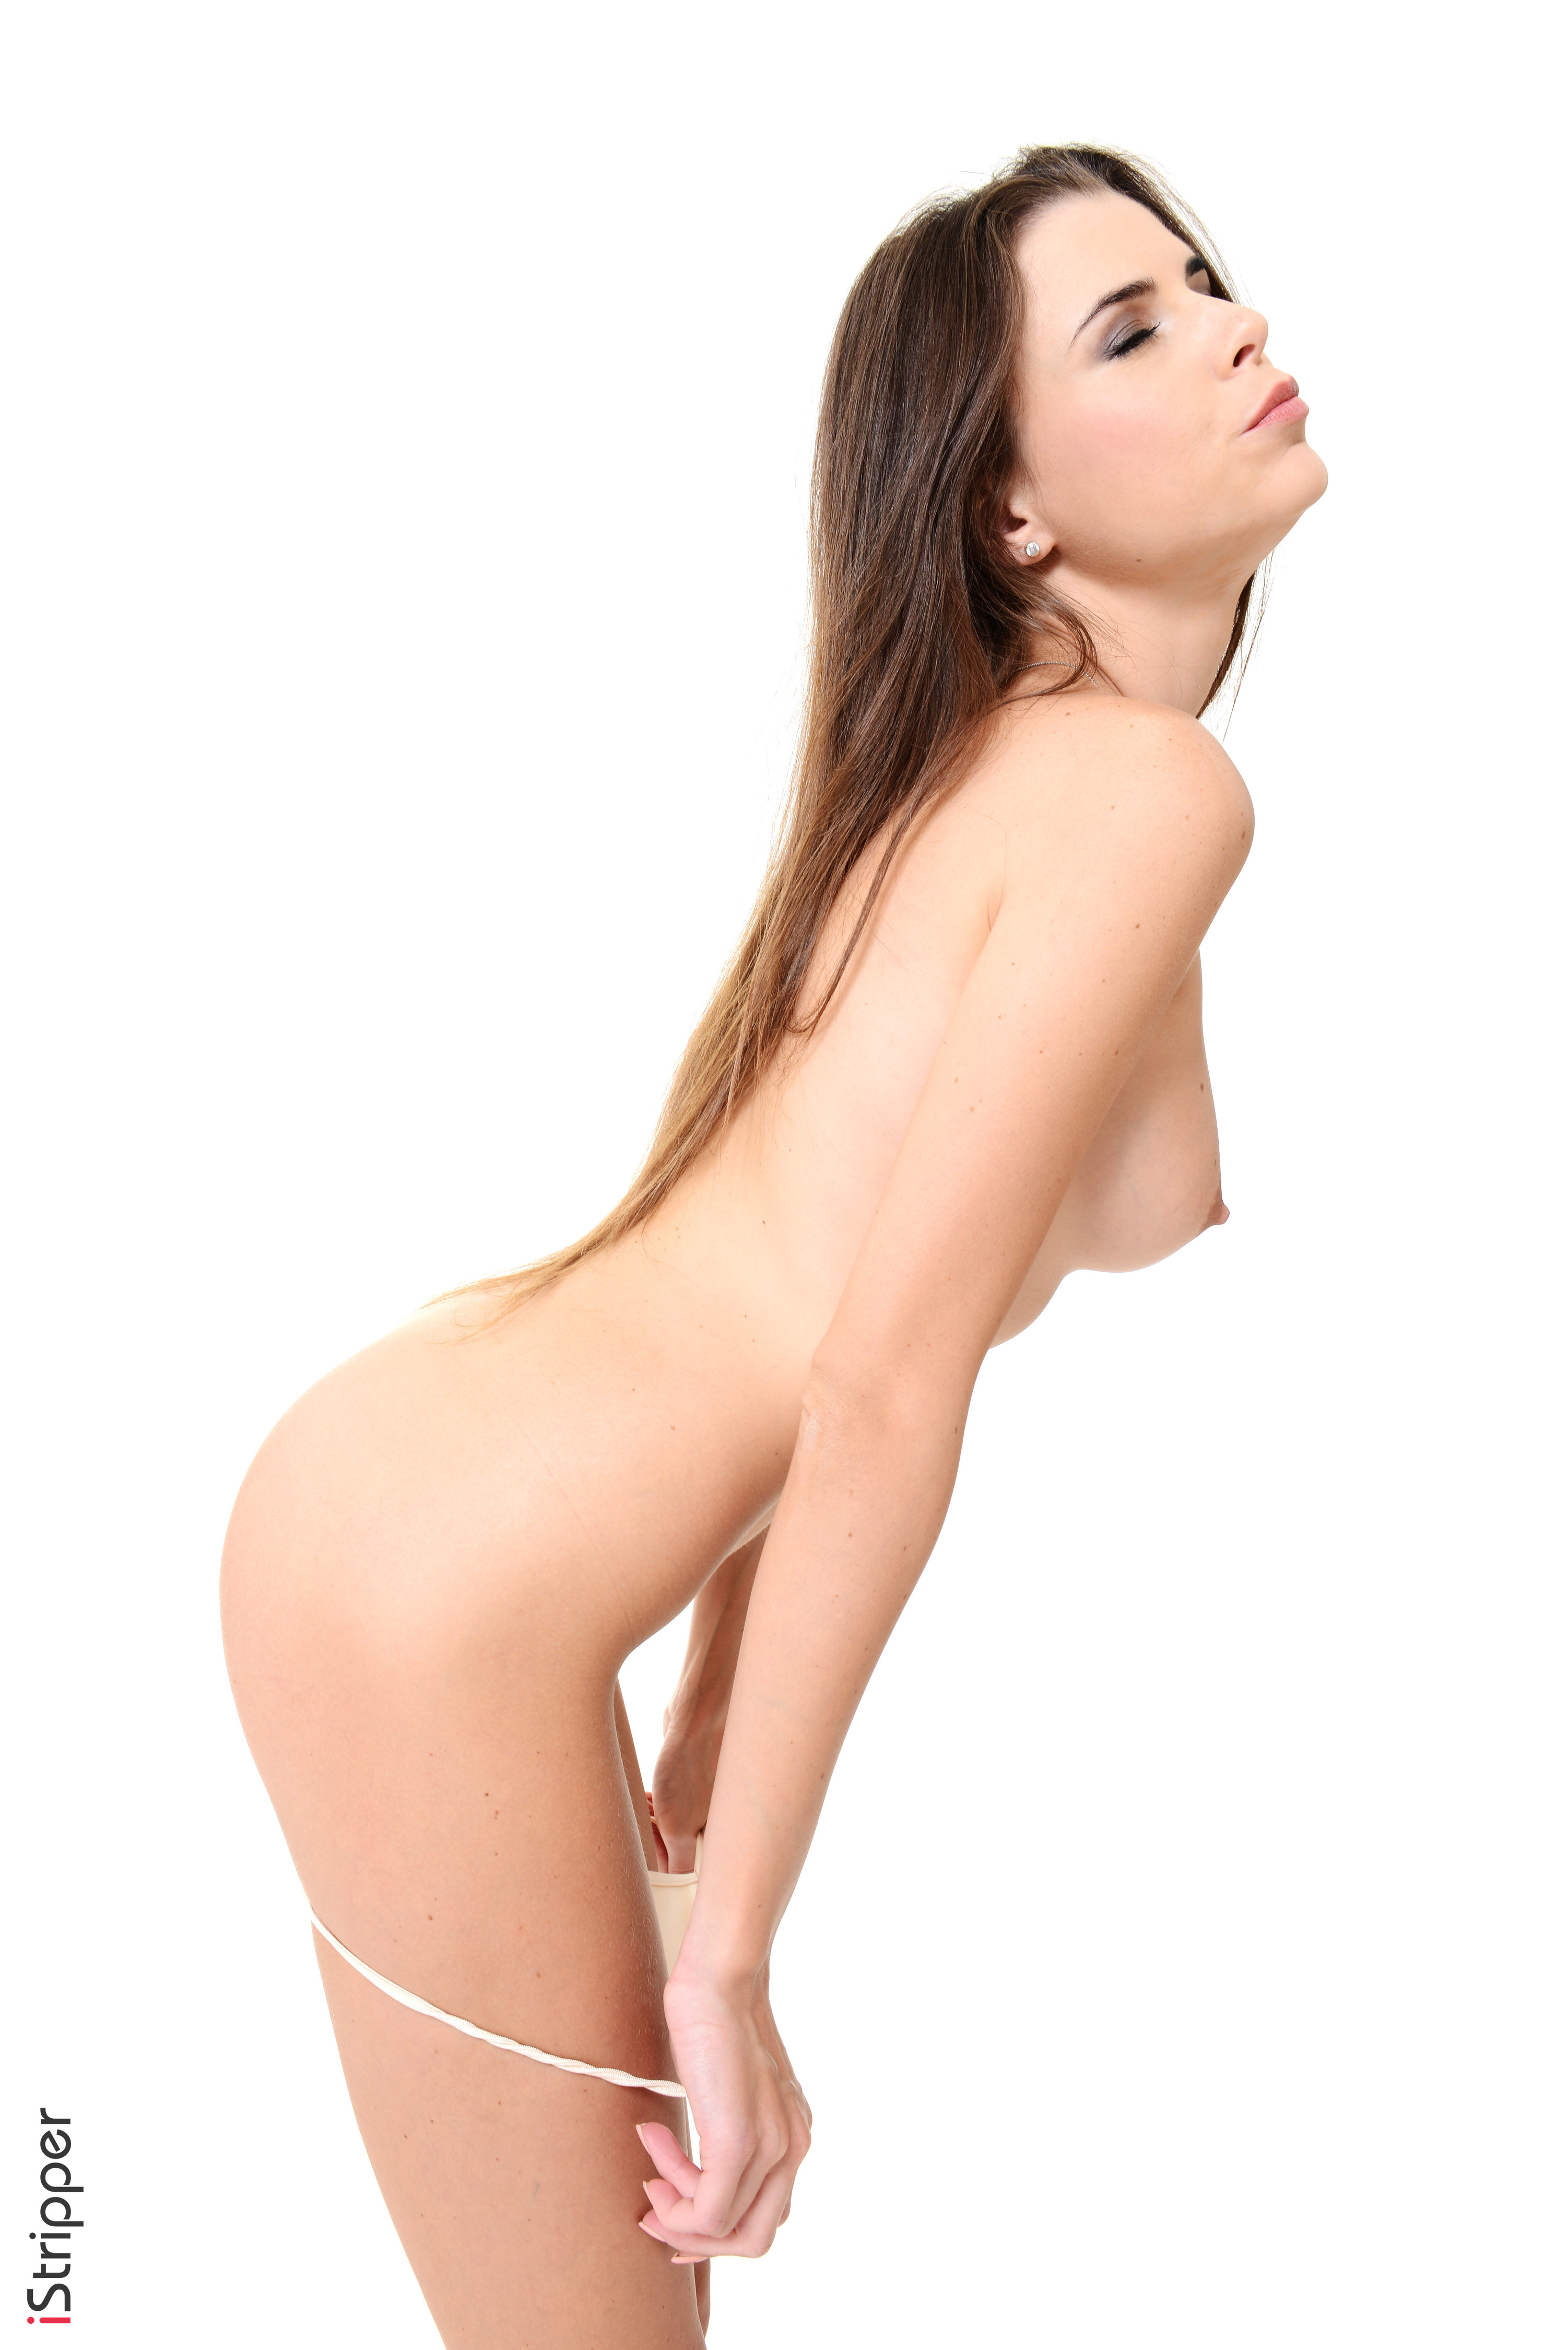 hot girls naked wallpapers